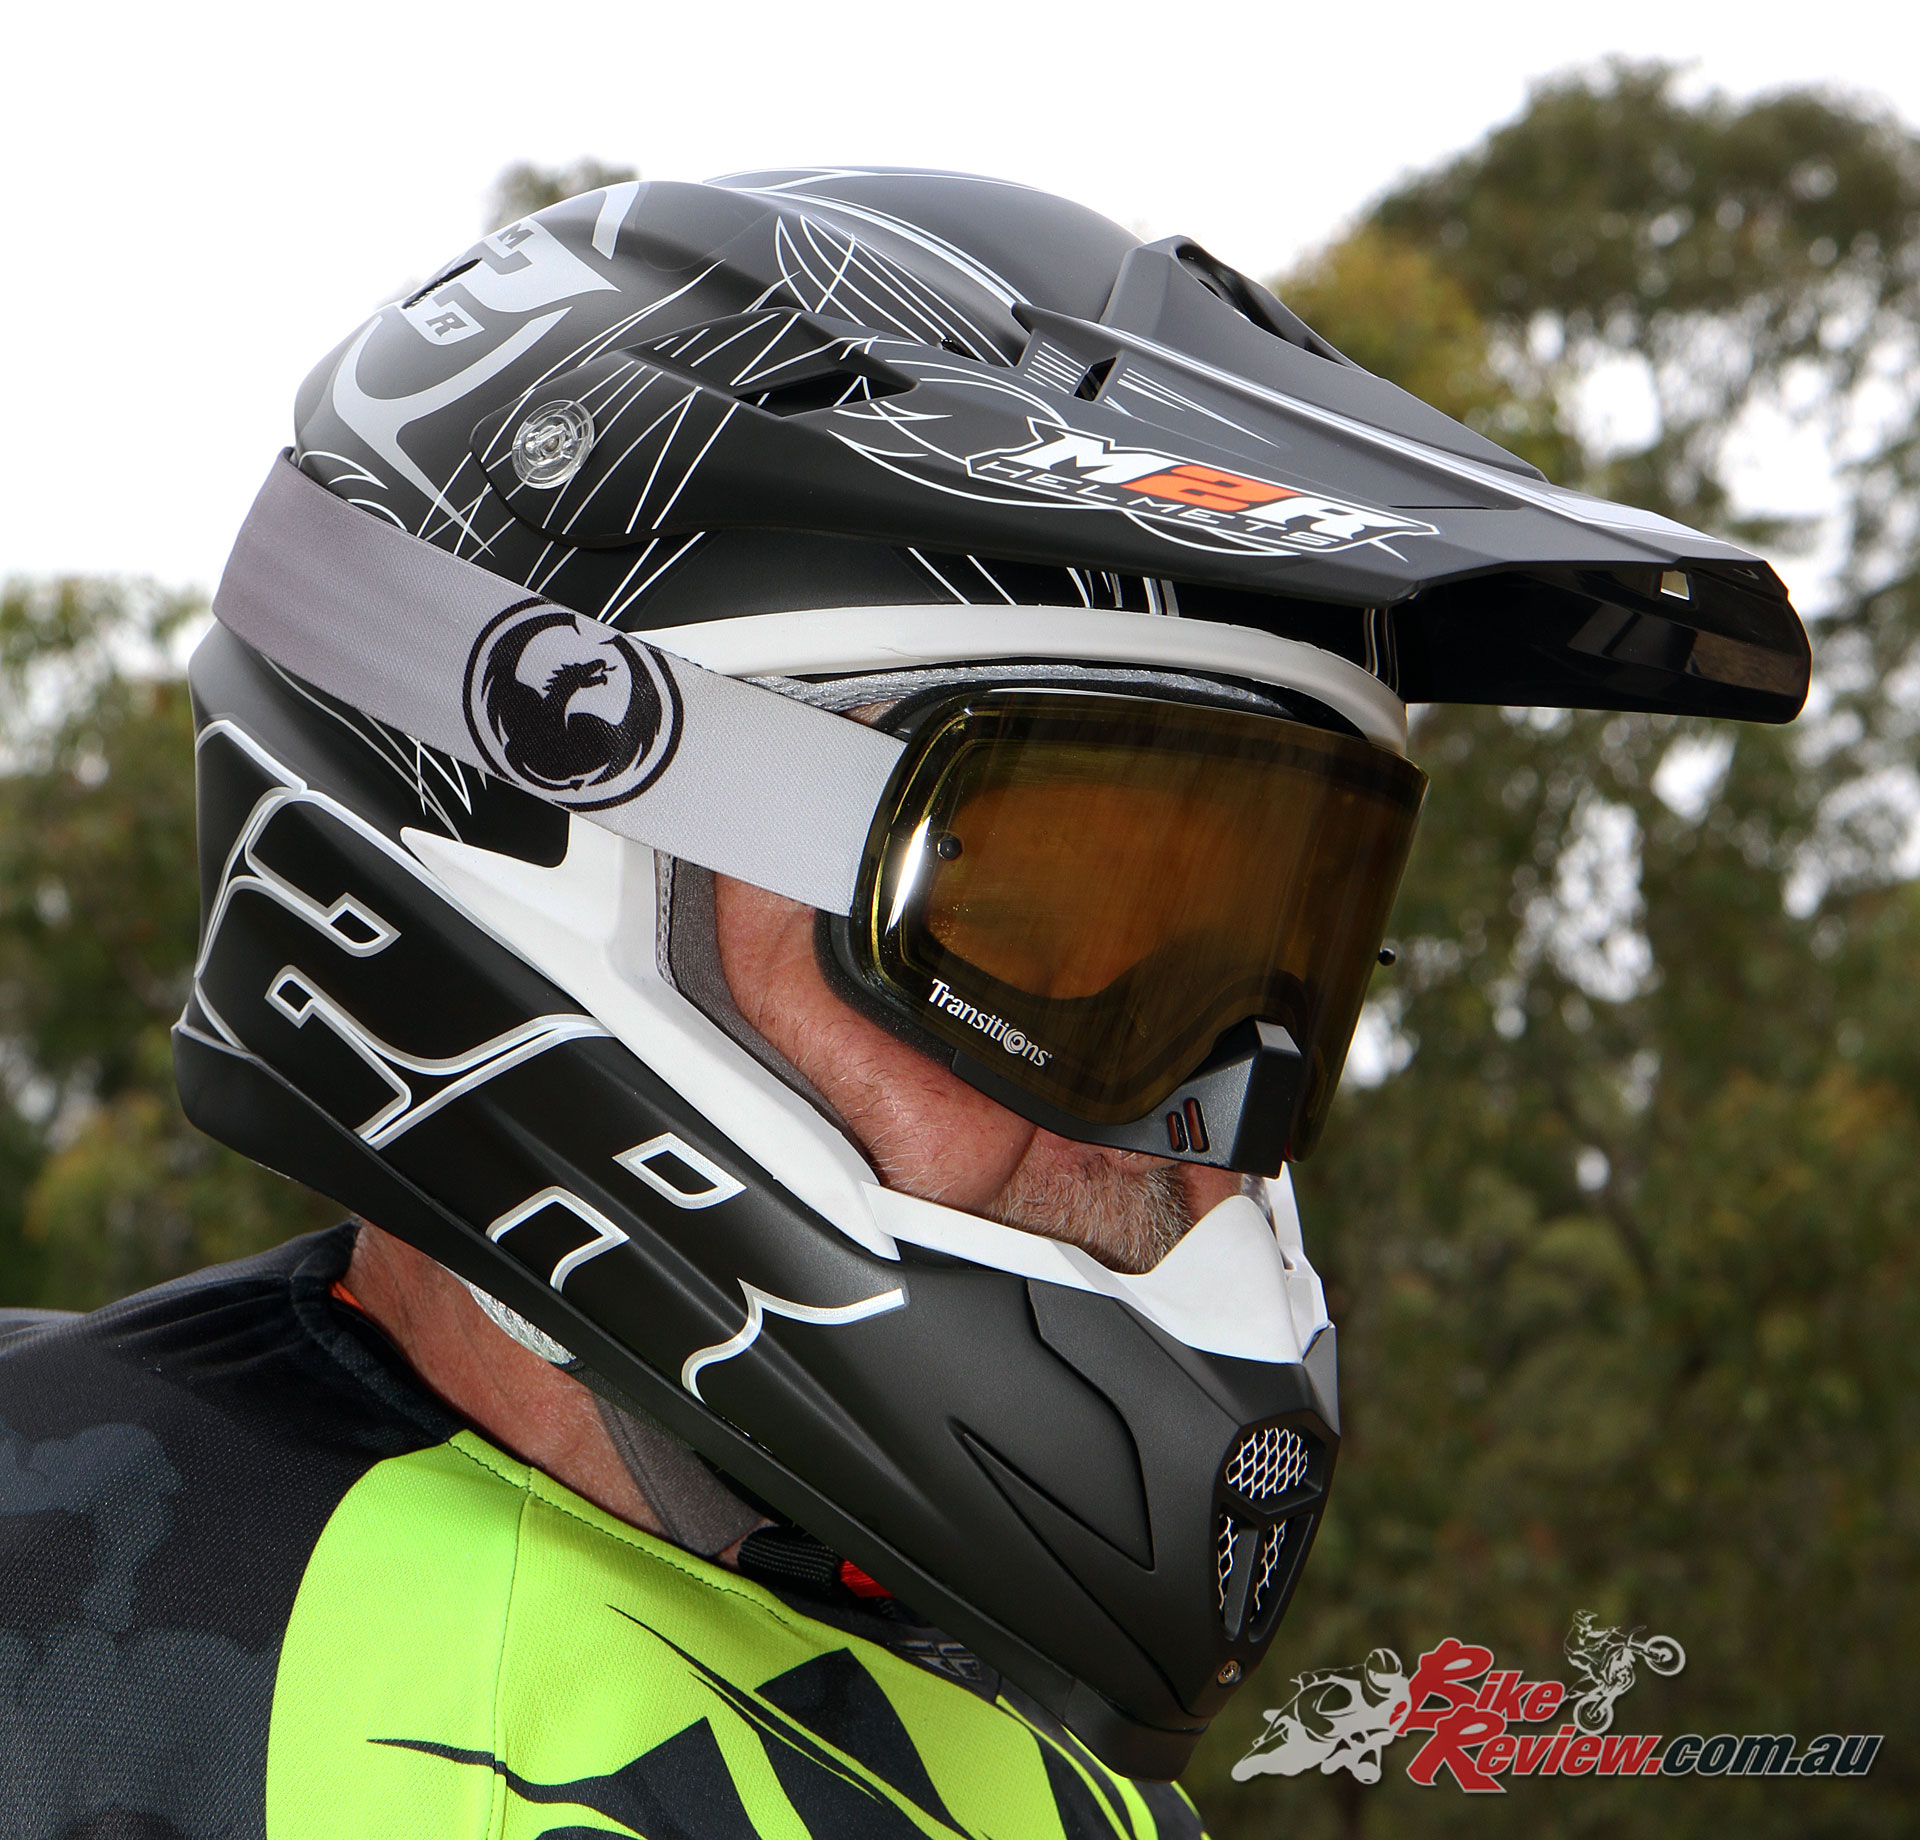 The M2R X-4.5 Helmet weighs just 1195g